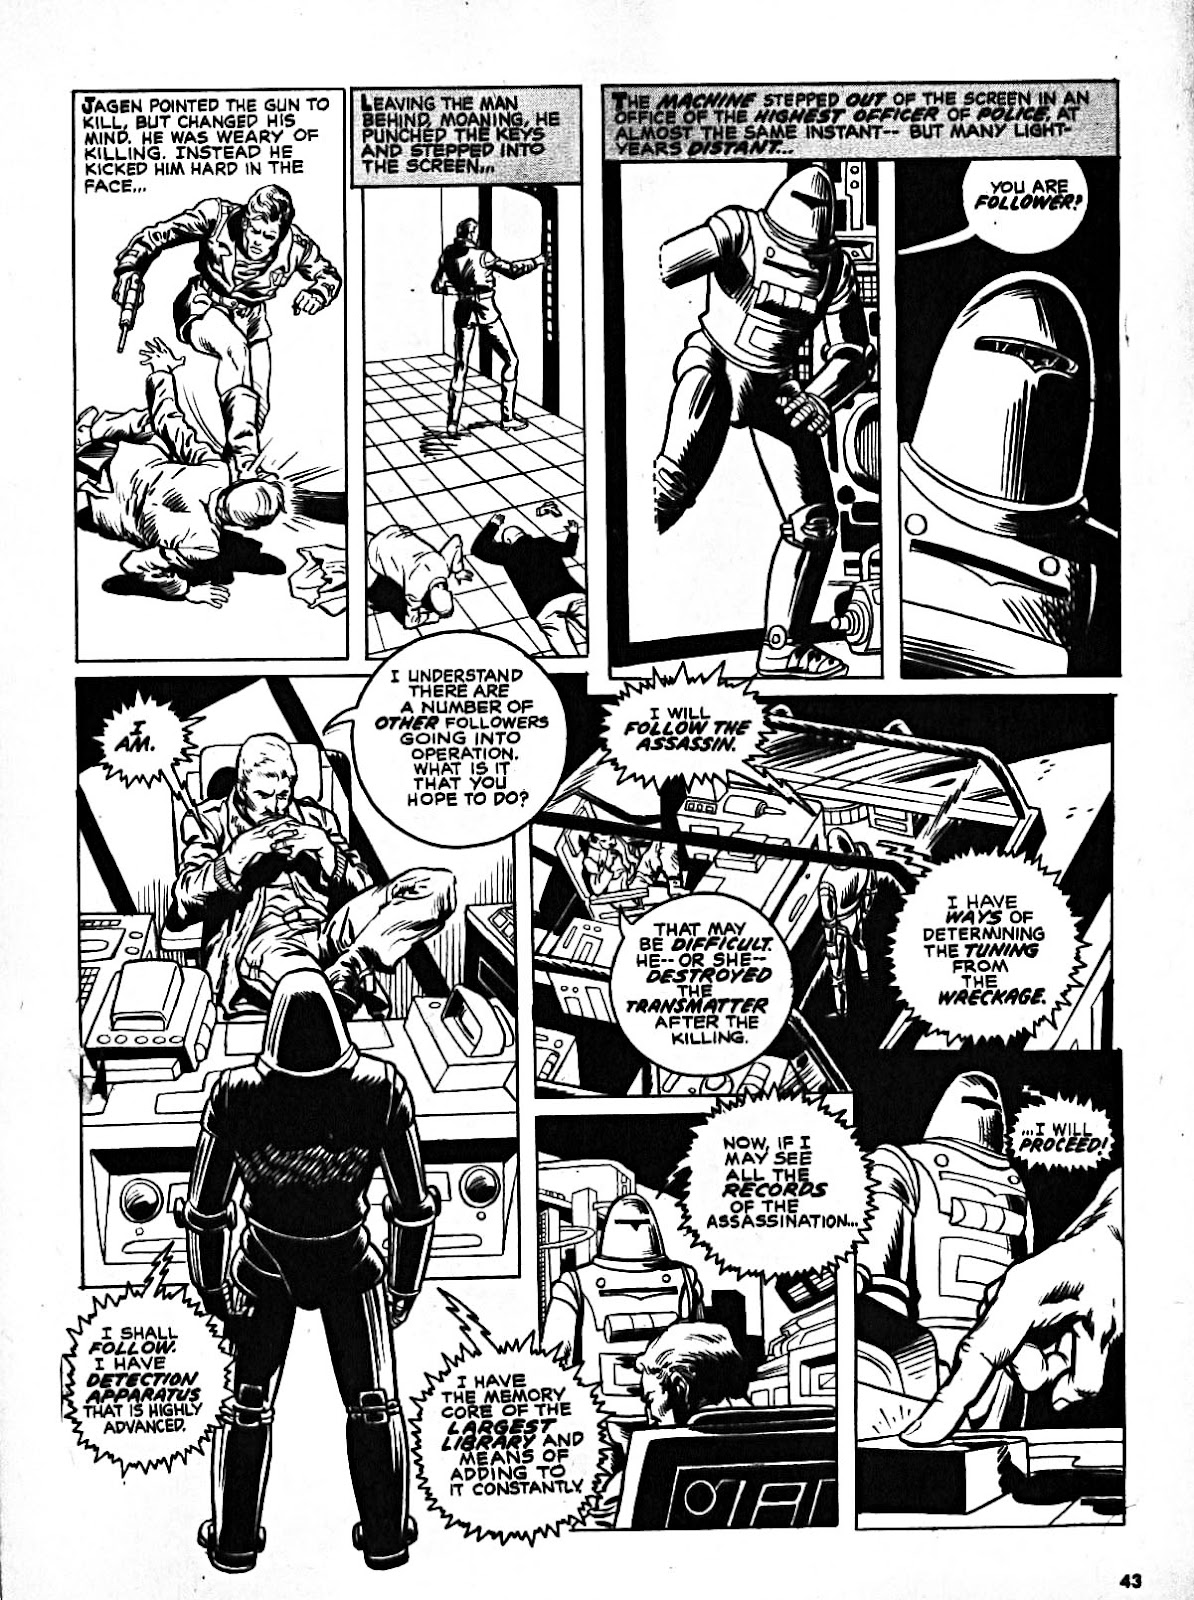 Scream (1973) issue 8 - Page 41